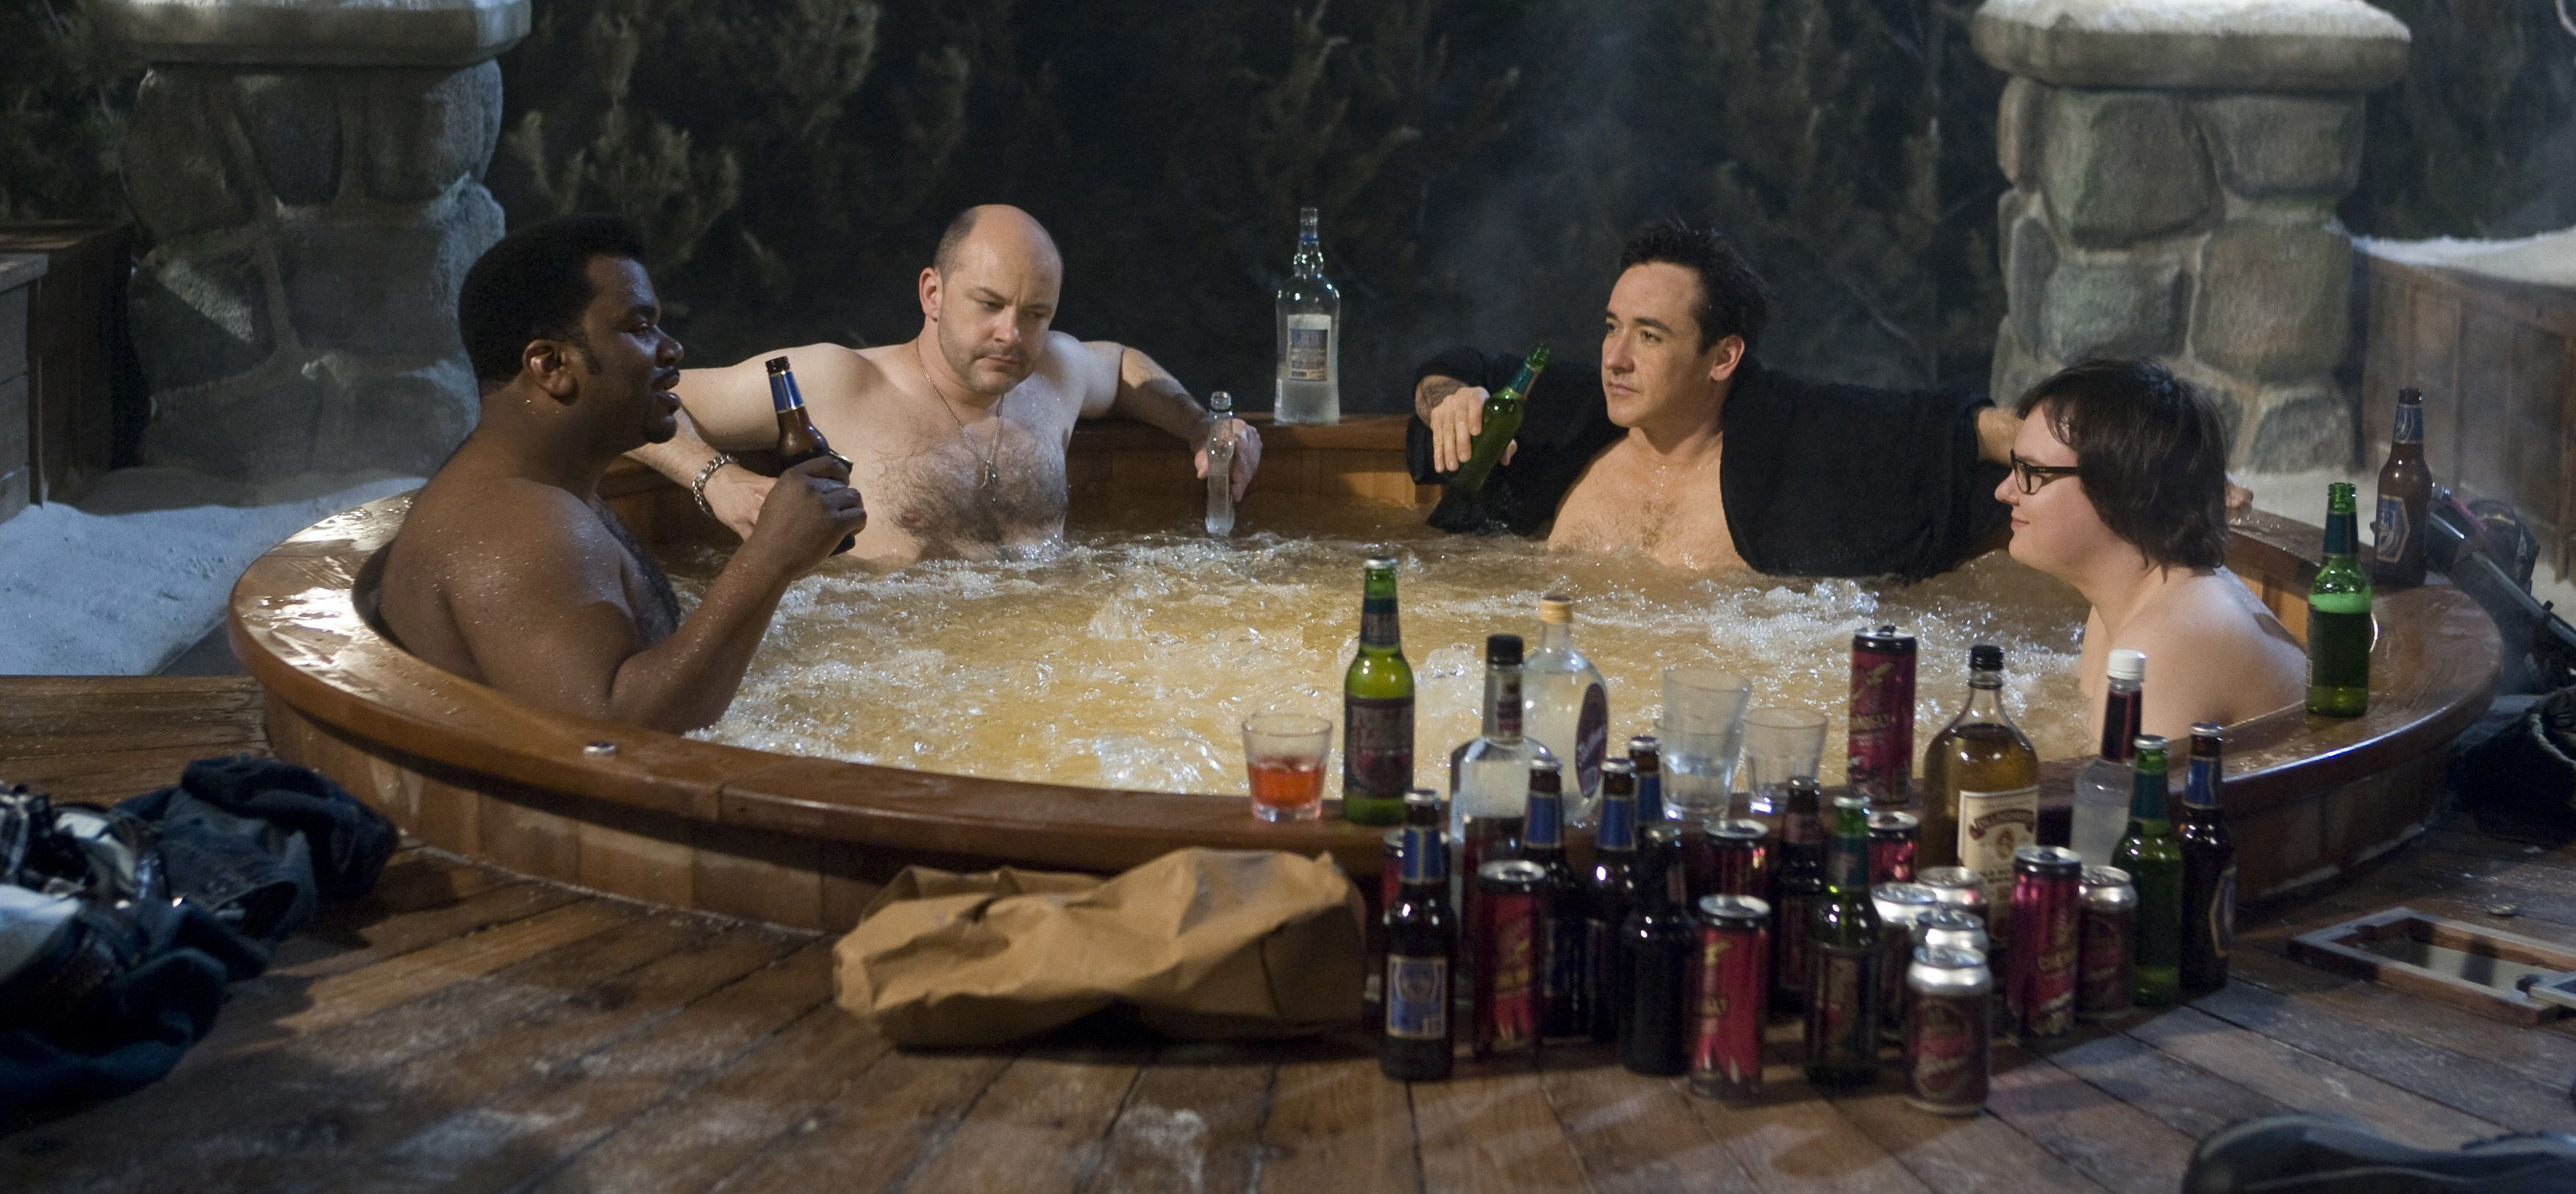 An image from Hot Tub Time Machine